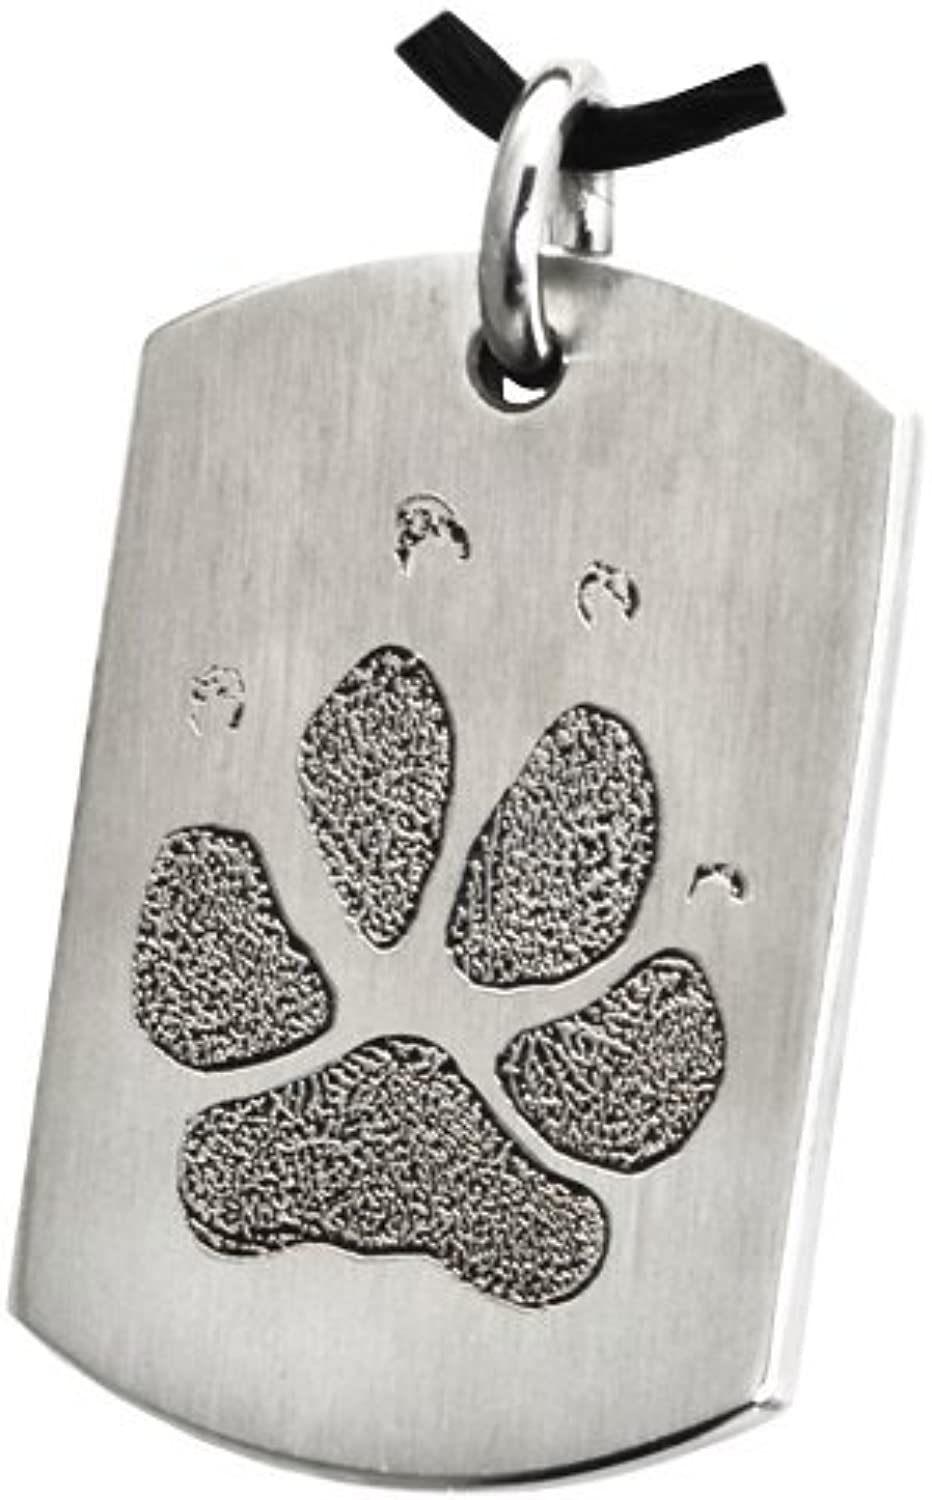 Actual Pawprint or Noseprint Flat Dog Tag Pendant (Pawprint, Stainless Steel)